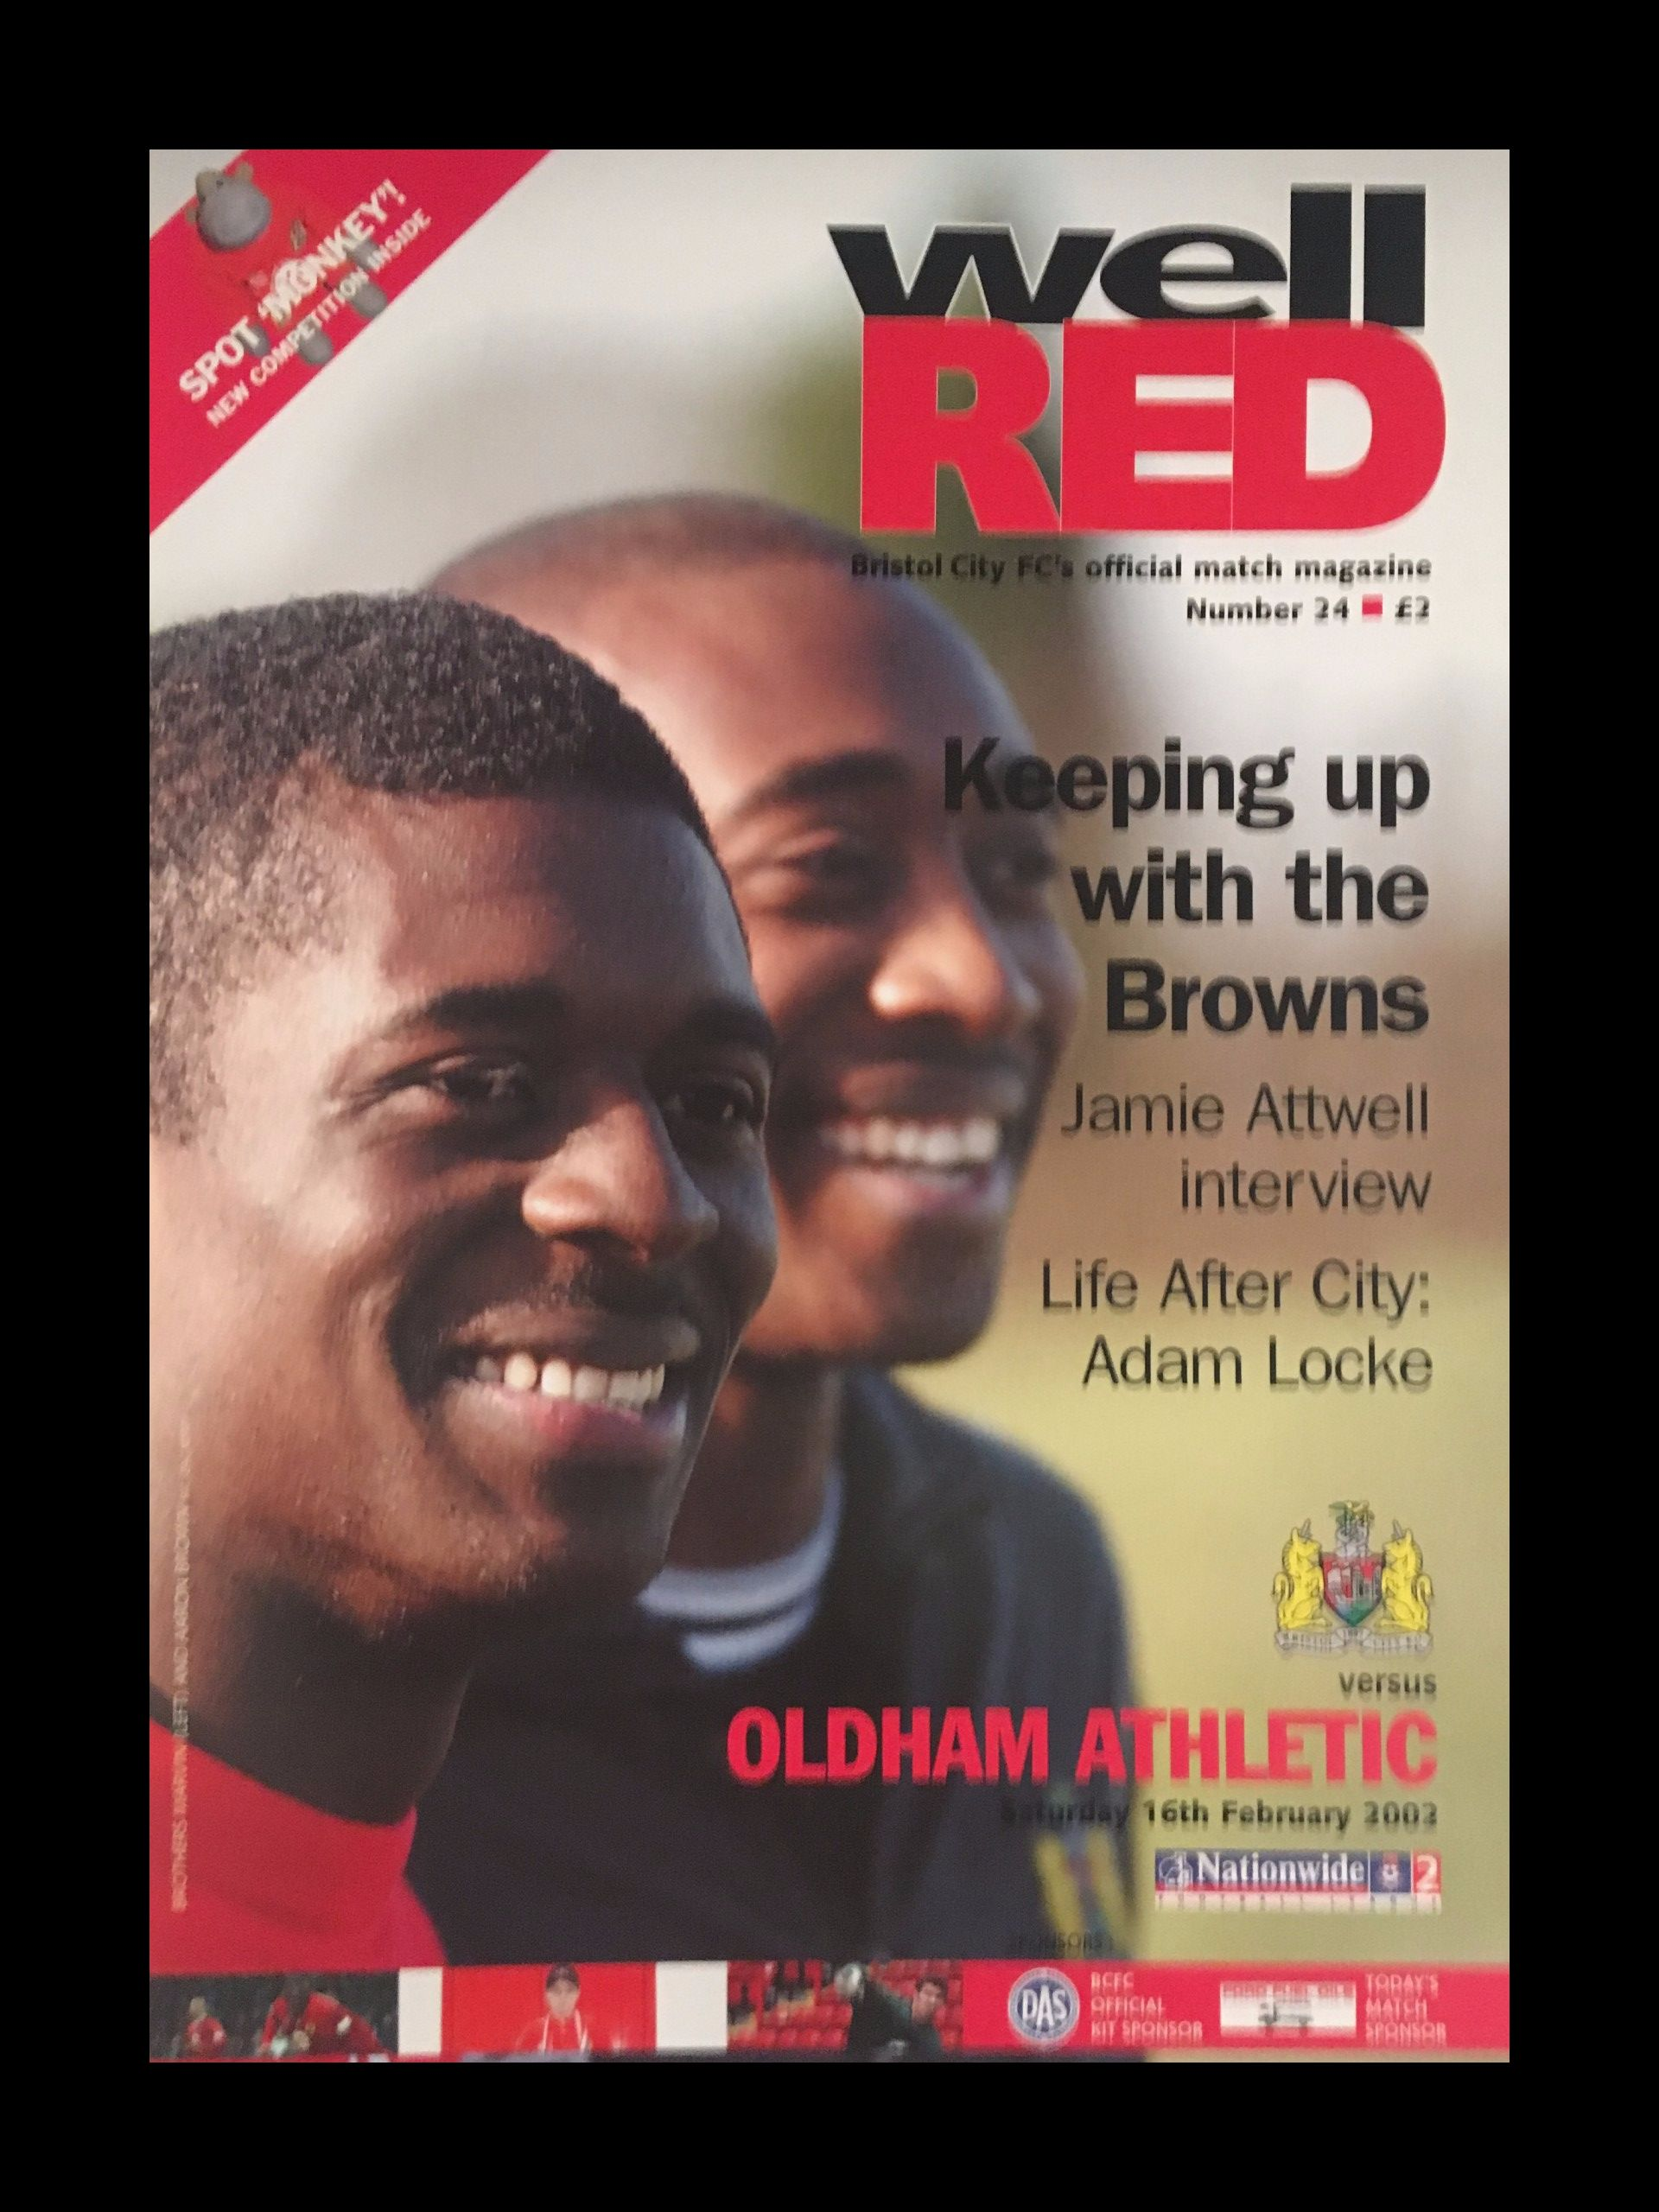 Bristol City v Oldham Athletic 16-02-2002 Programme